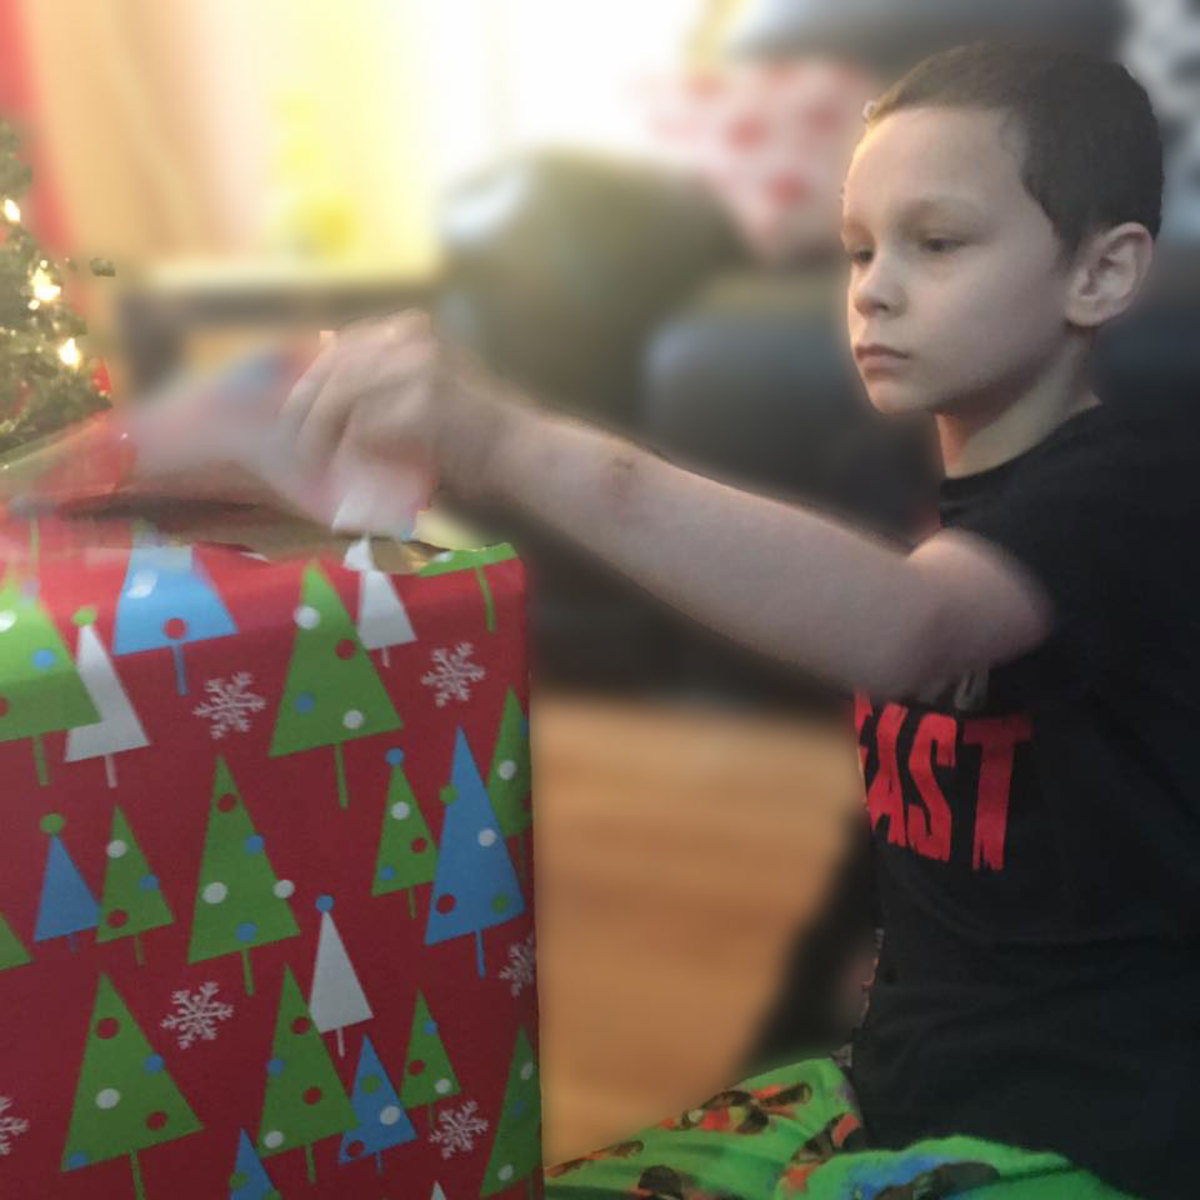 The struggle to open a present with autism